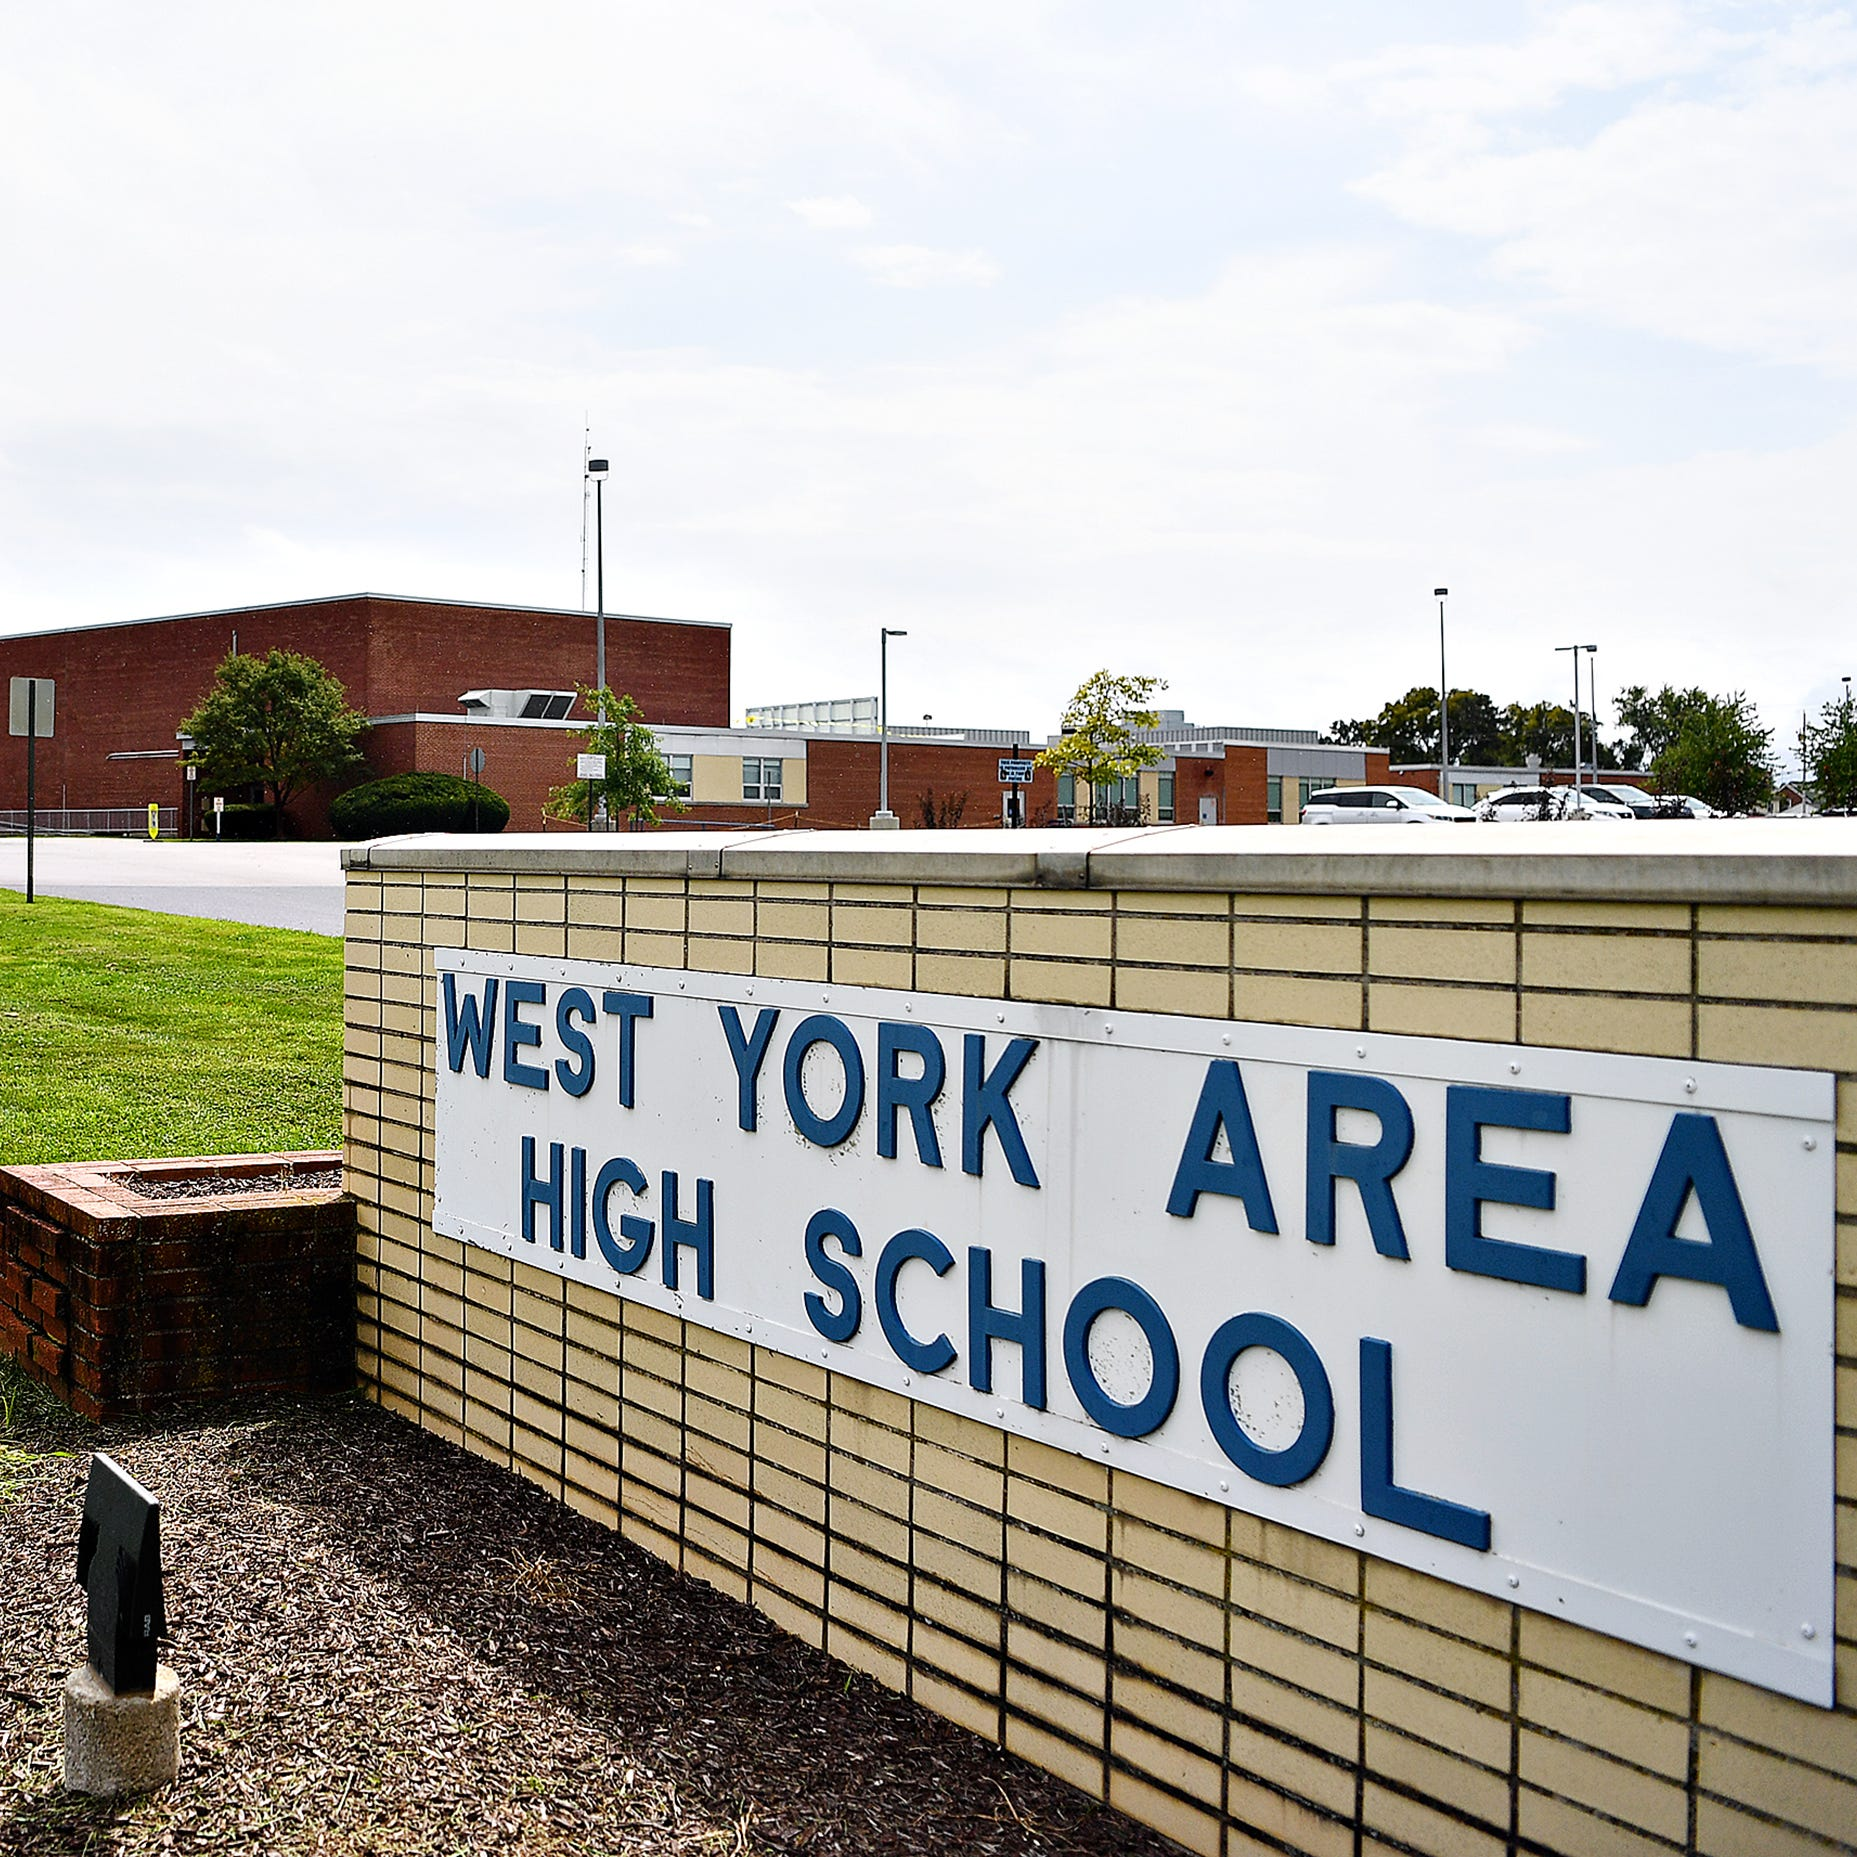 West York lunch program sparks dueling petitions